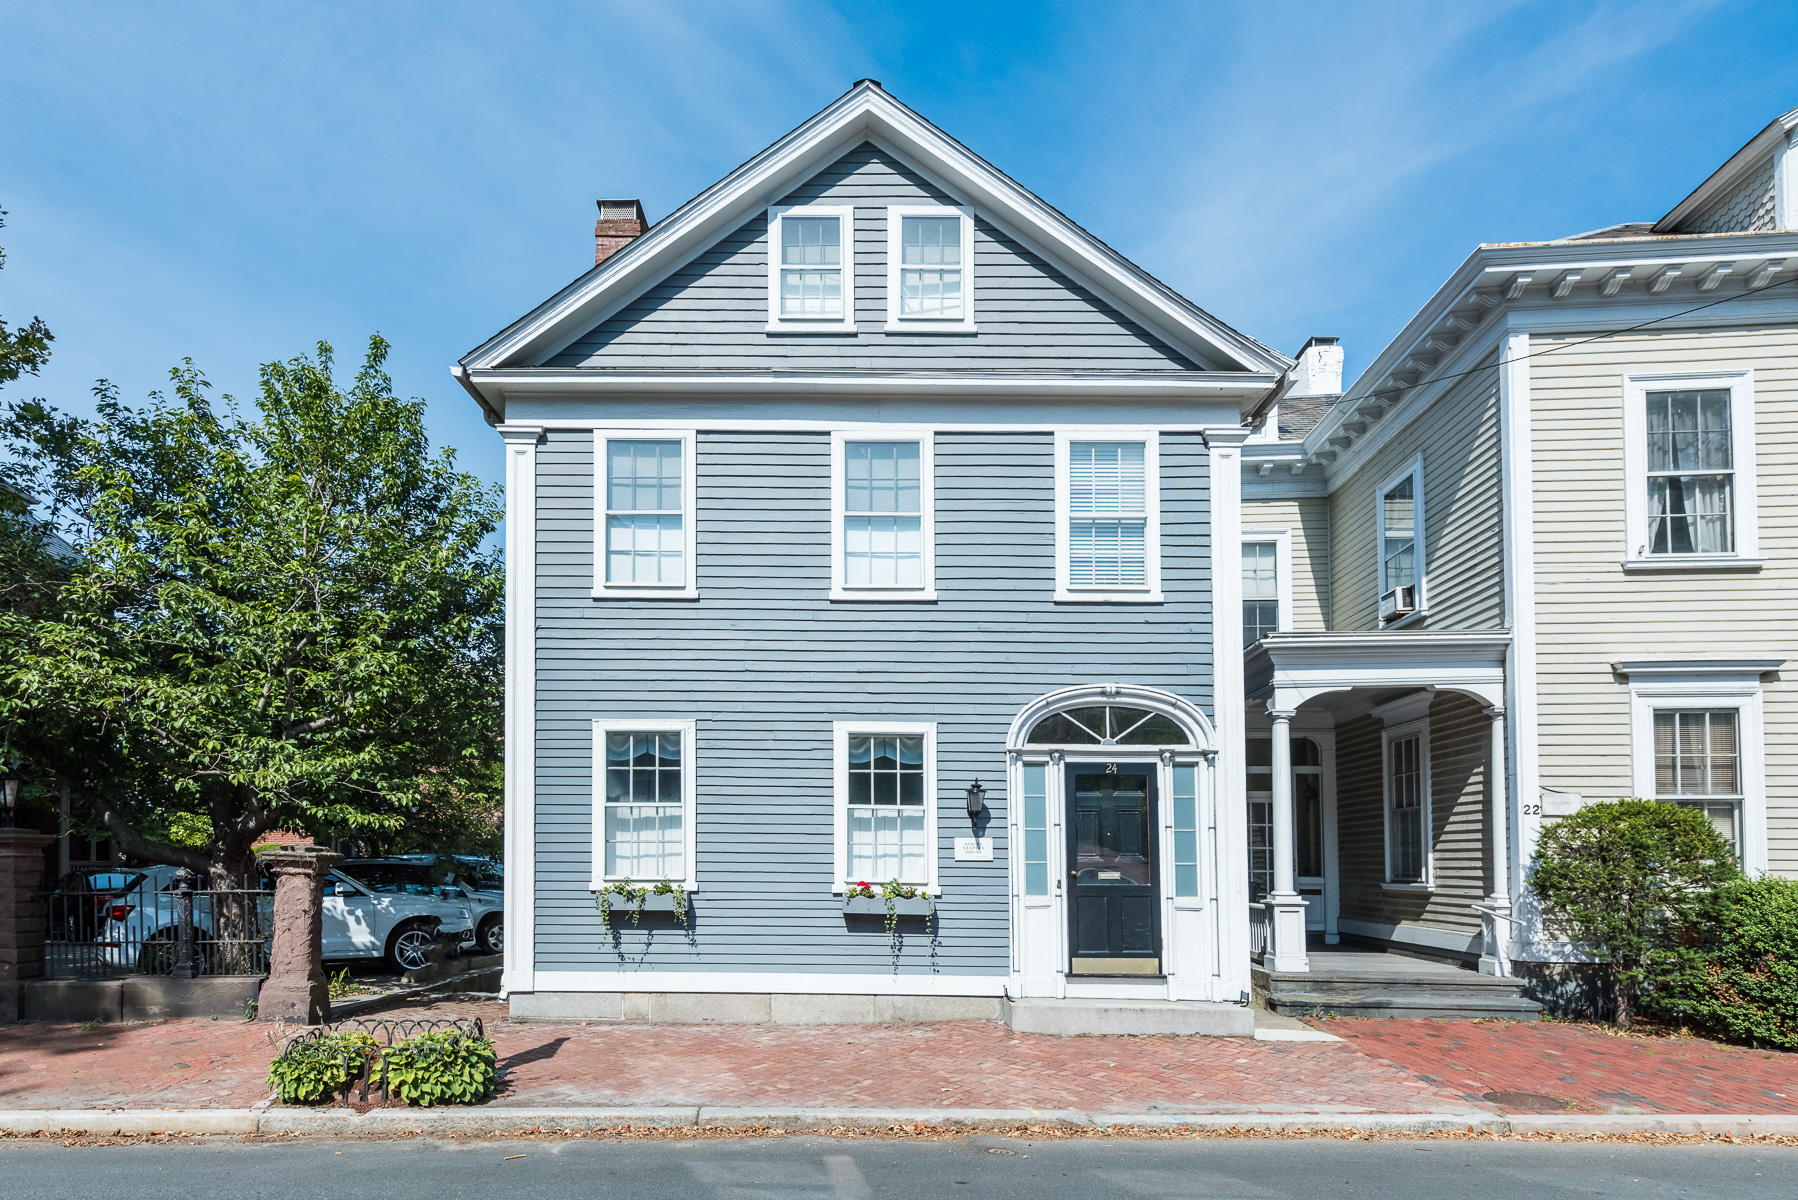 Single Family Home for Sale at 24 Benefit St, East Side Of Prov, RI College Hill, Providence, Rhode Island, 02904 United States